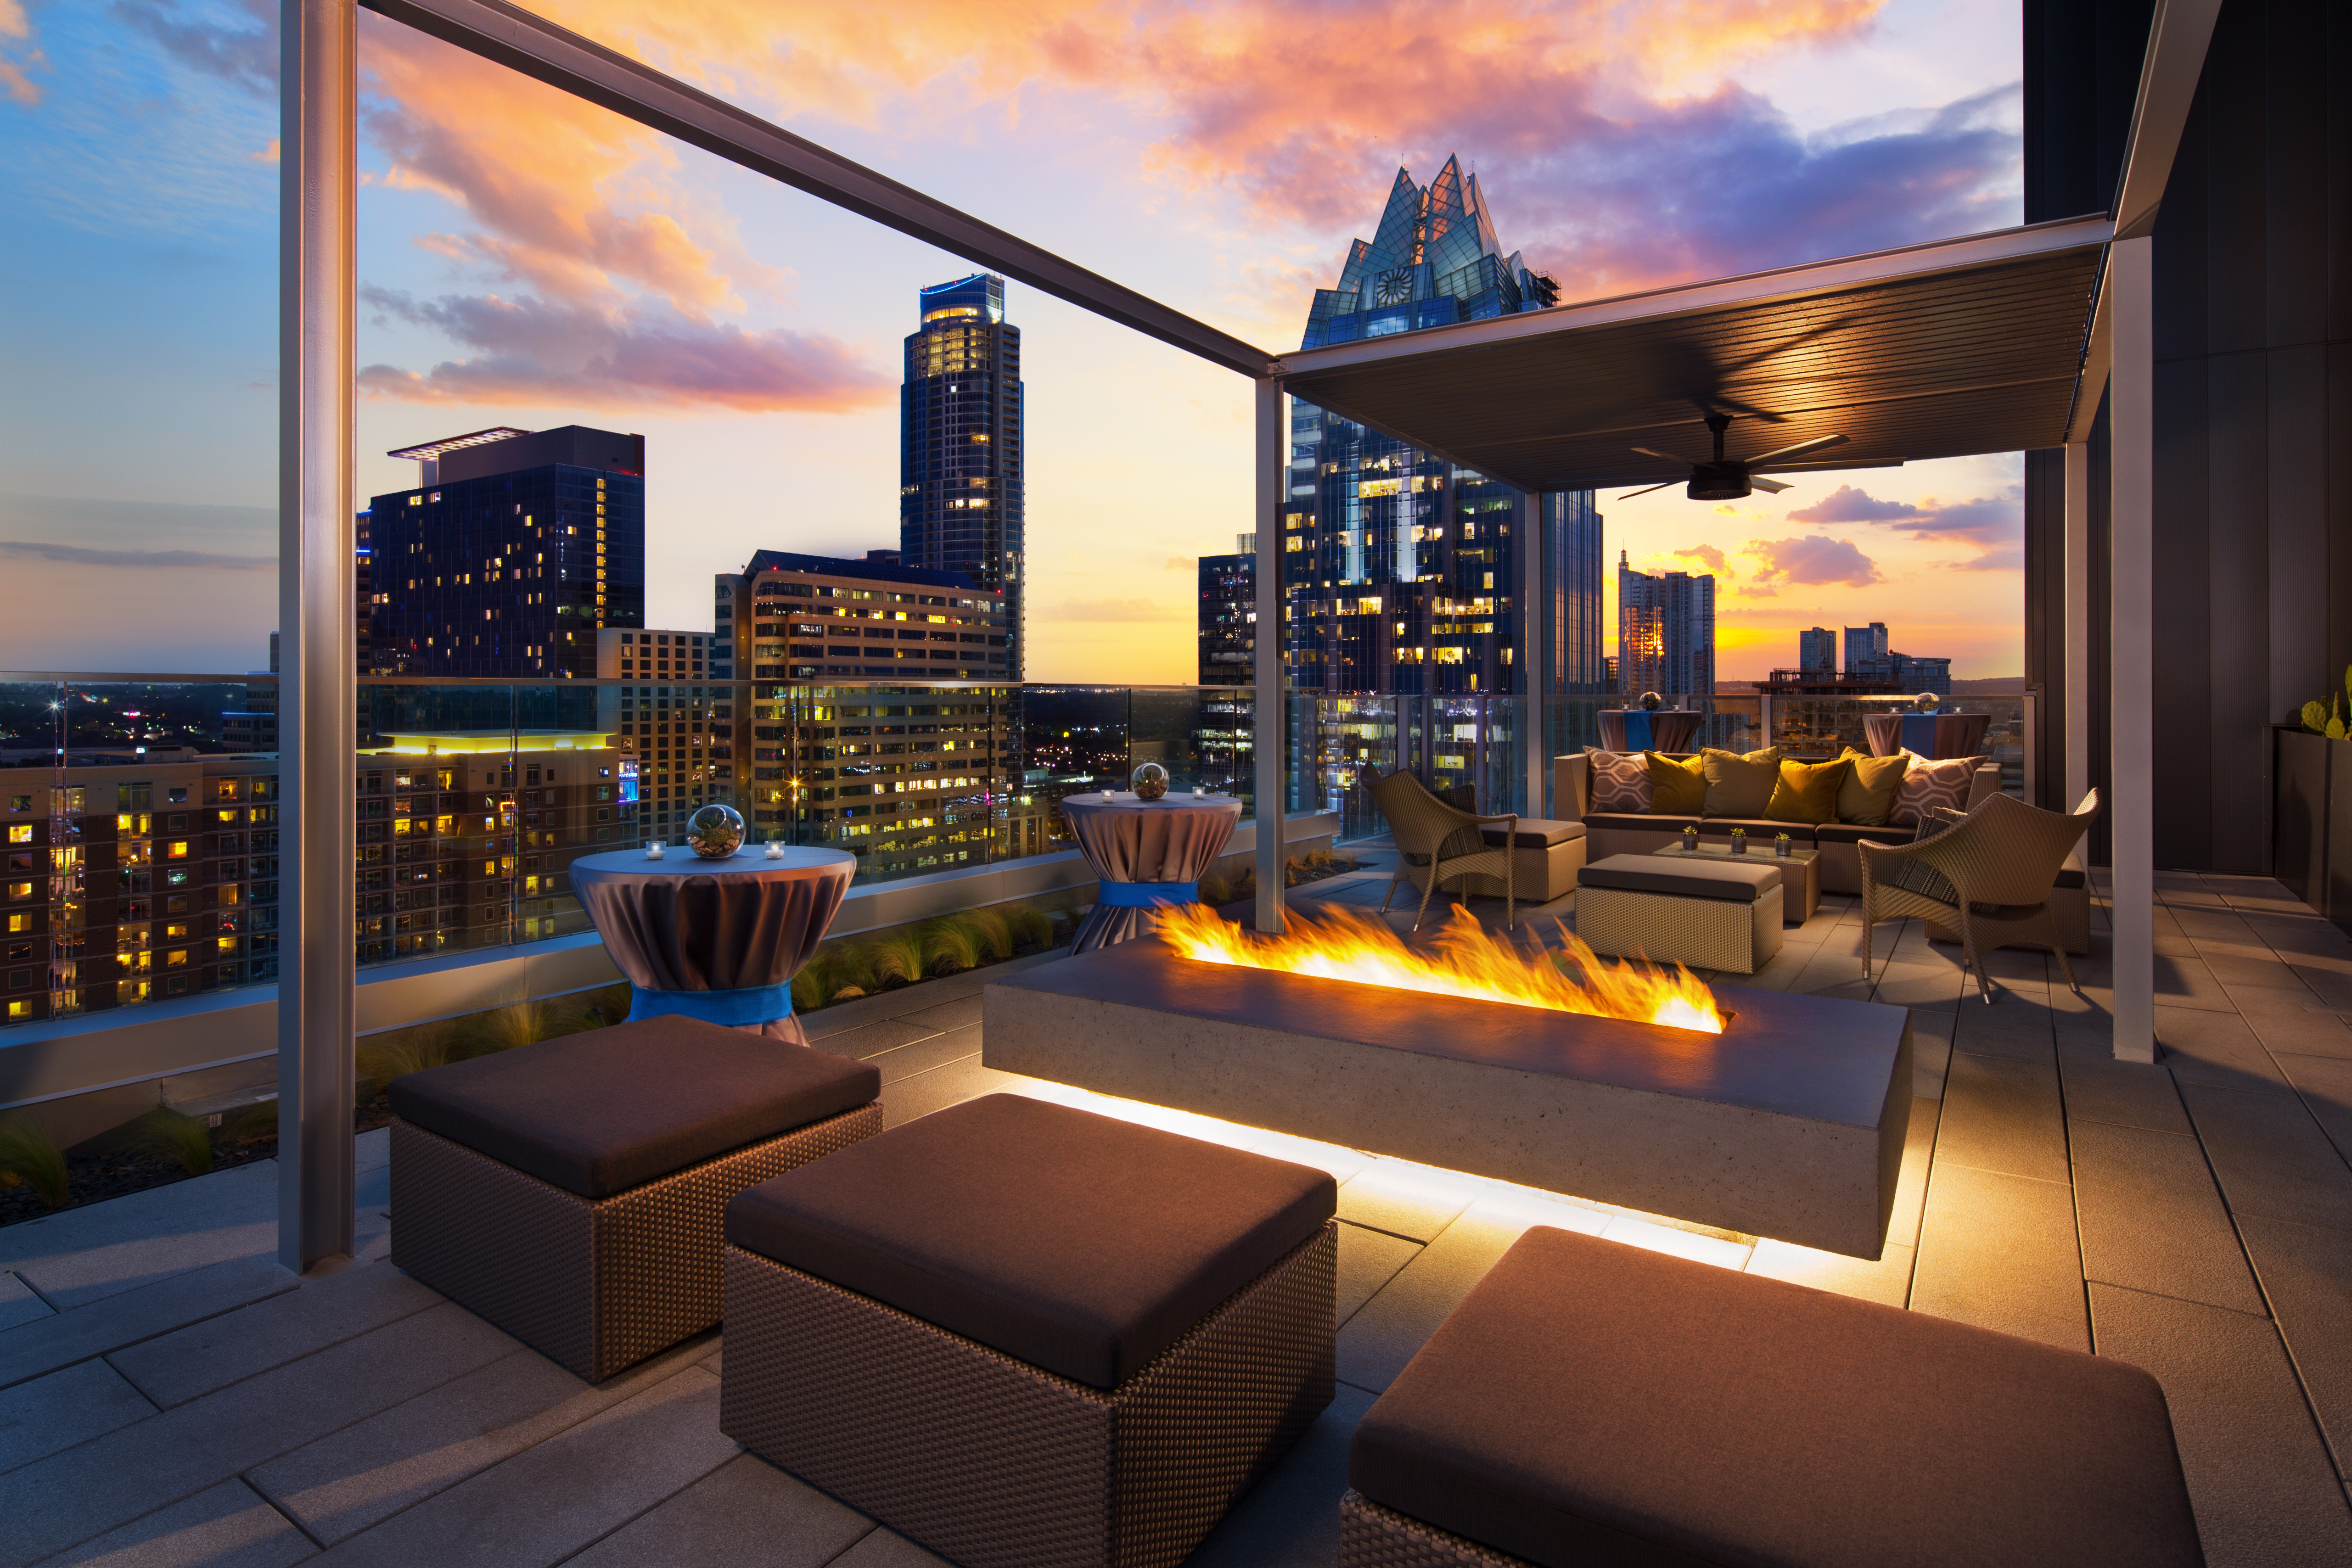 Best Rooftop Bars And Restaurants At Austin Hotels Eater